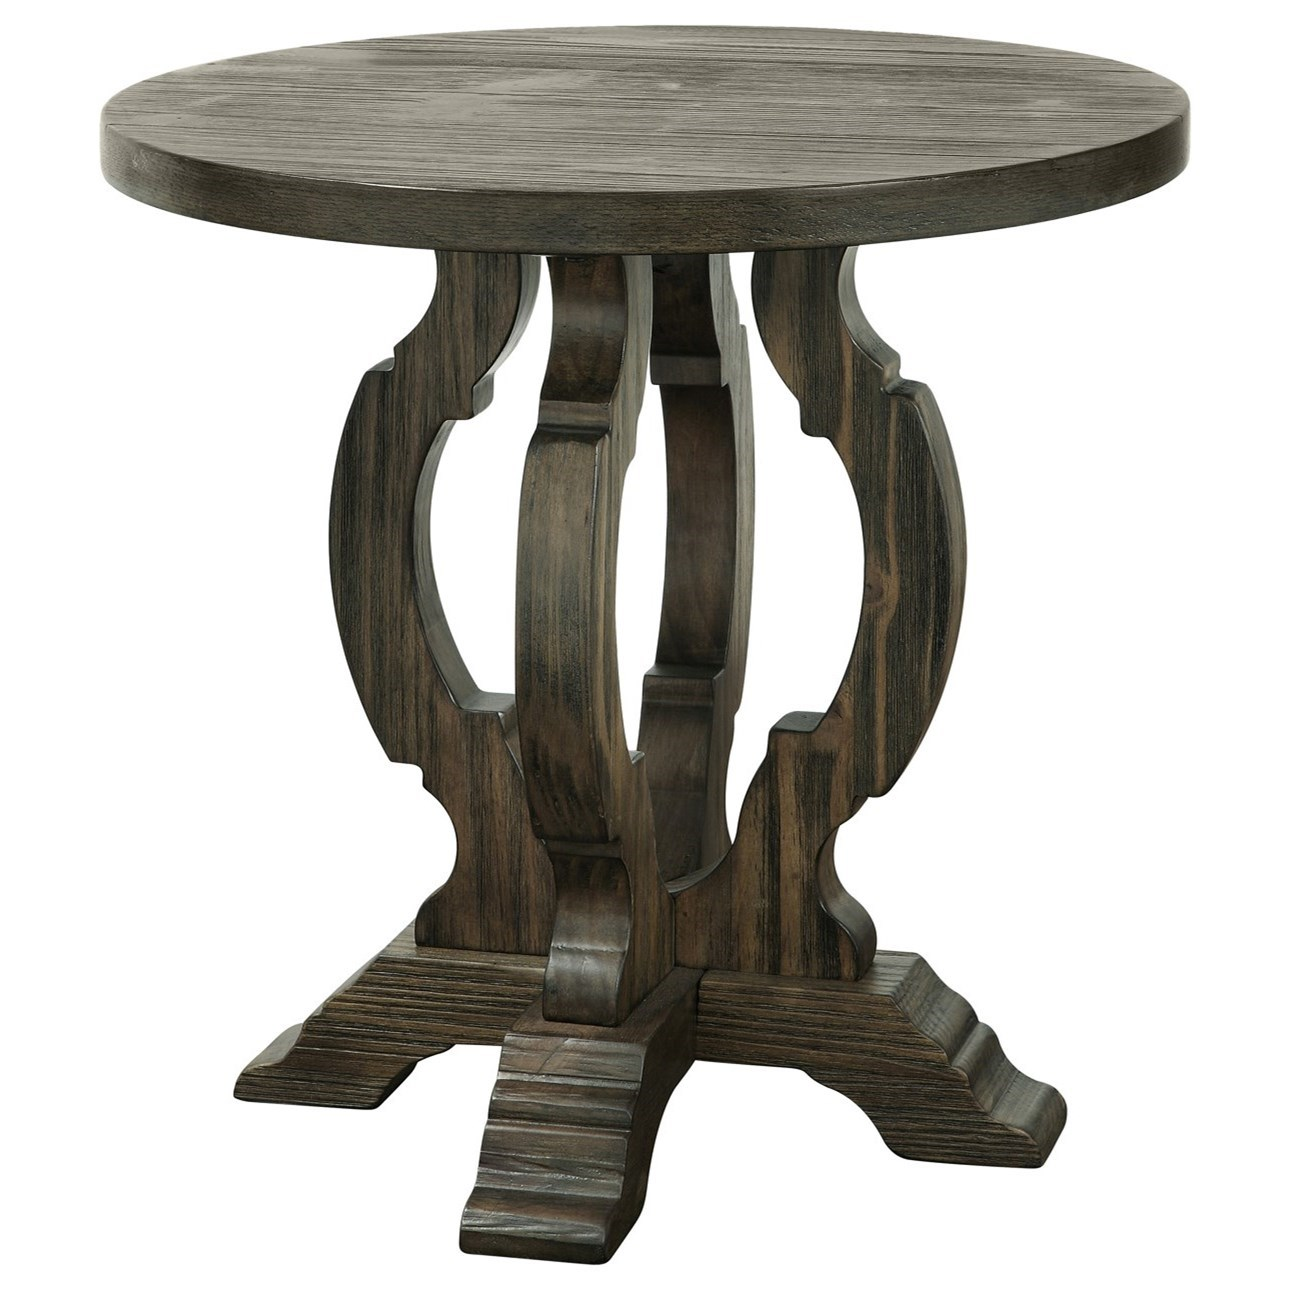 Orchard Park Round Accent Table by C2C at Walker's Furniture